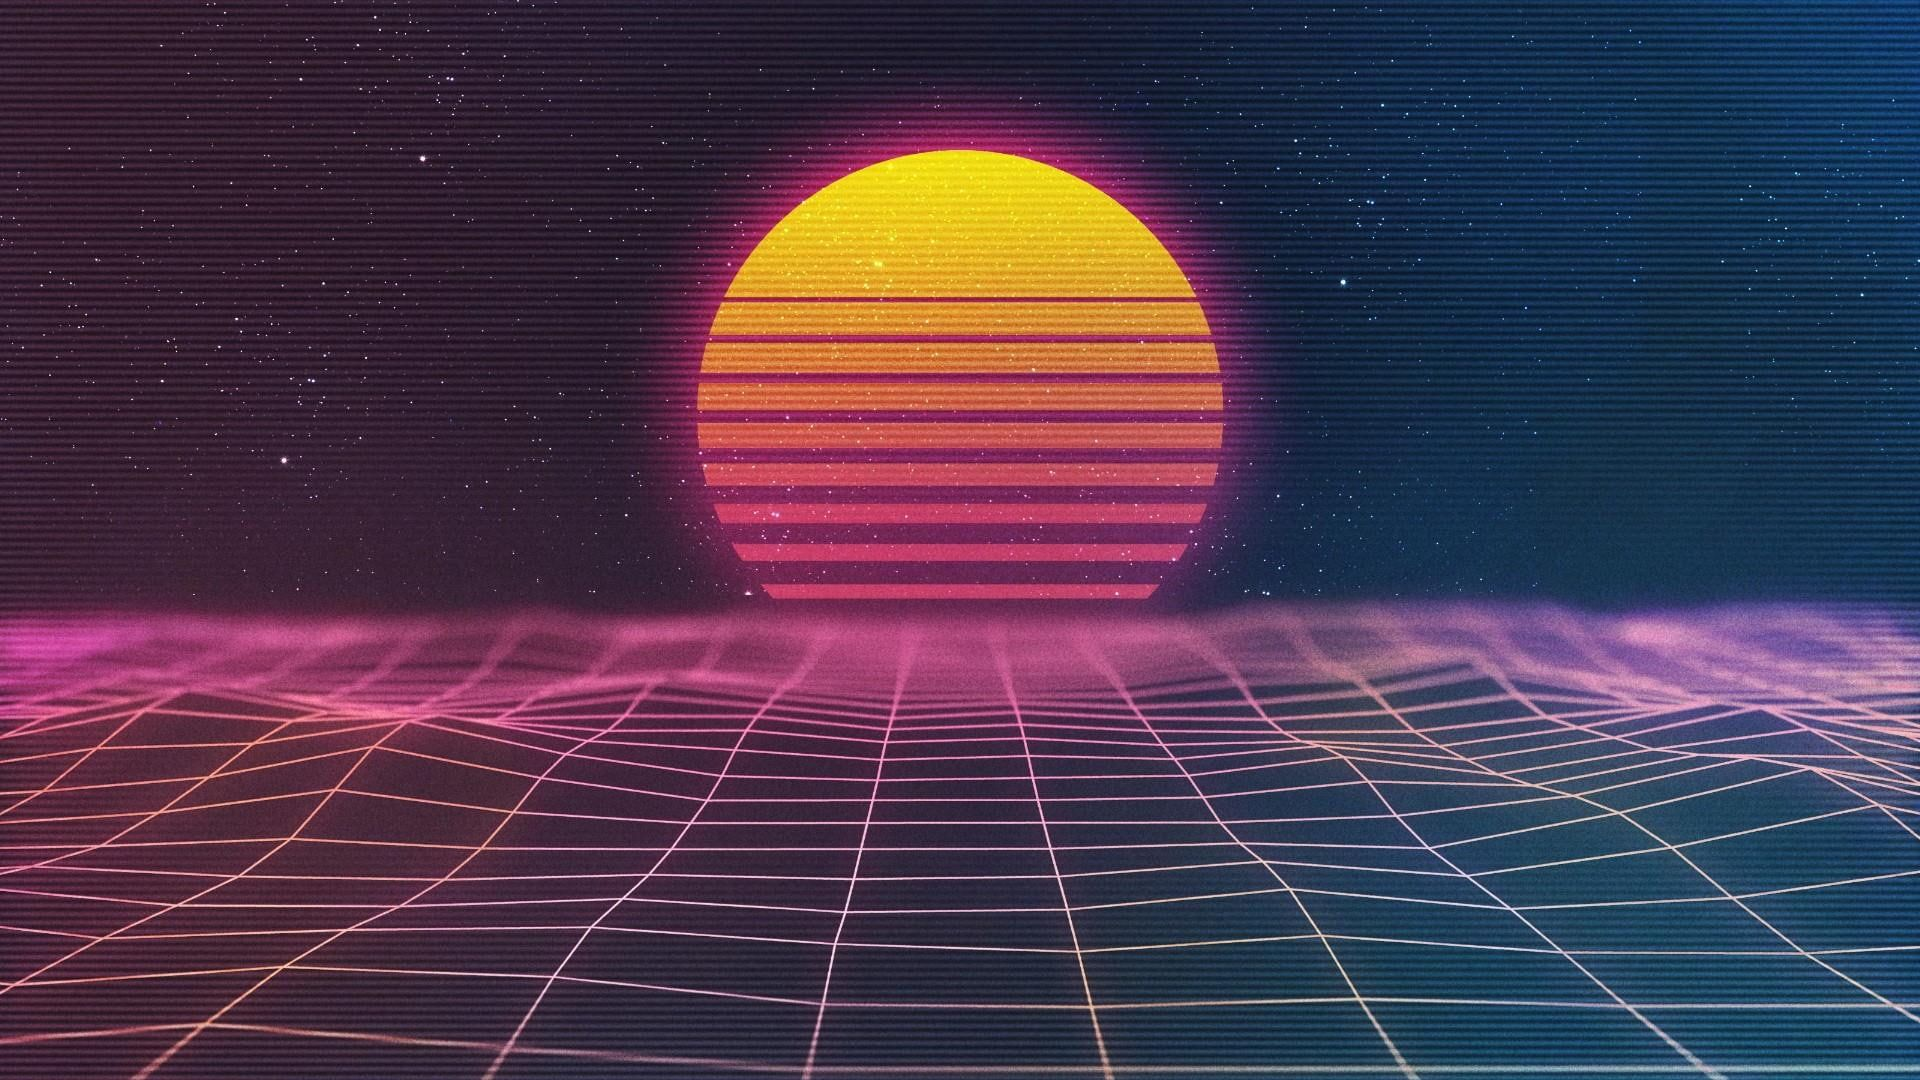 Neon Sun Sky Energy Space Retrowave Syntwave Style Design Digital Art Vaporwave Retro Retro Style Sphere Vaporwave Wallpaper Hd Wallpaper Vaporwave